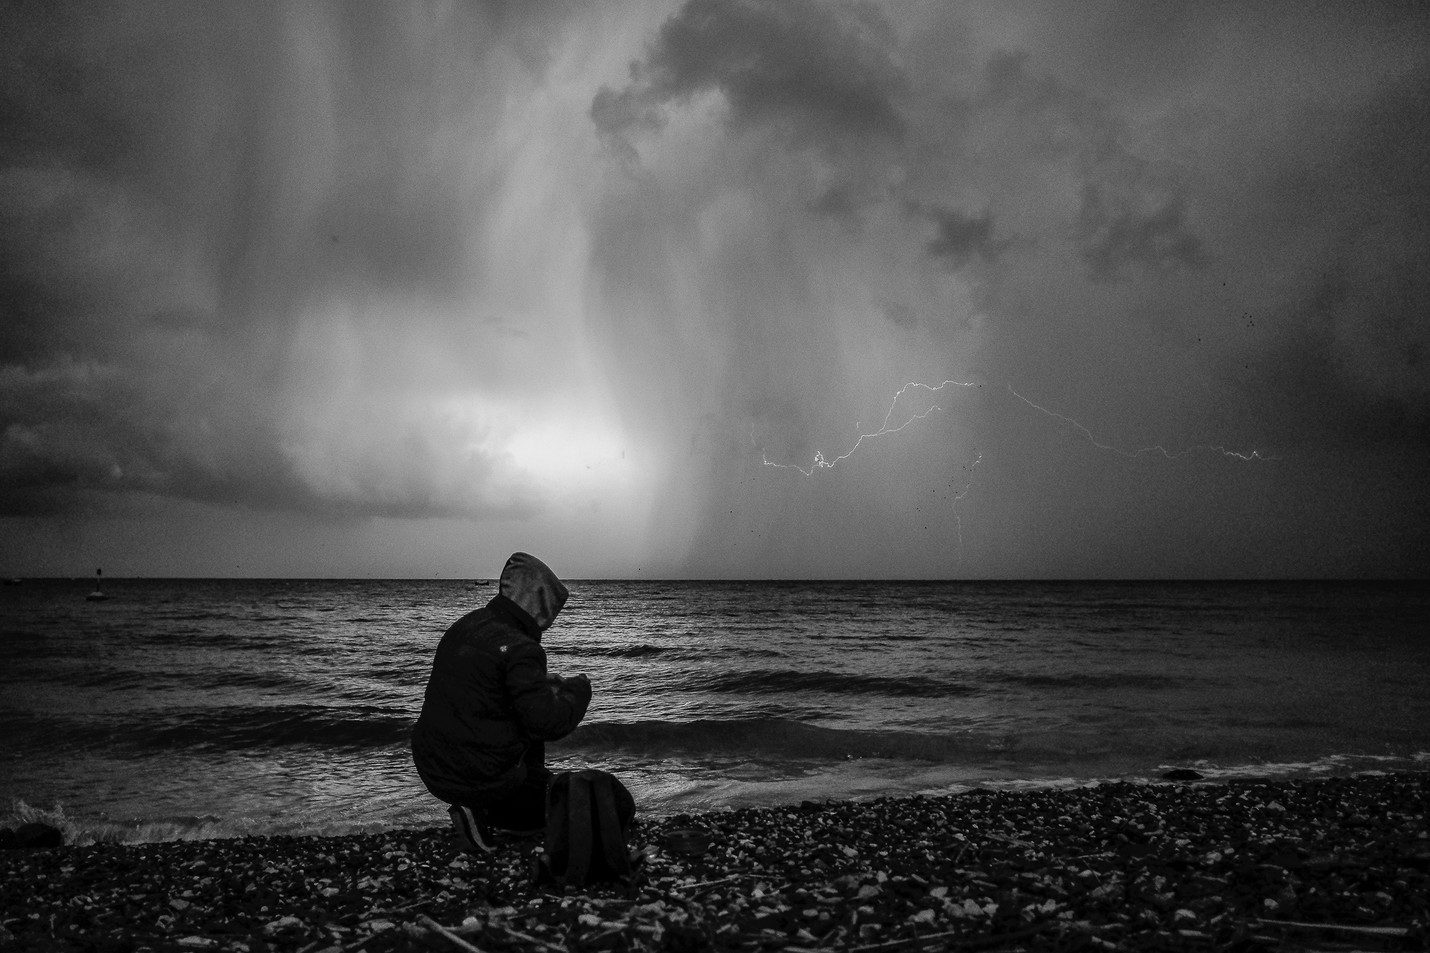 Shahram (14), an Afghan boy, fishing on the shore just outside of Mytilene, during a massive storm.